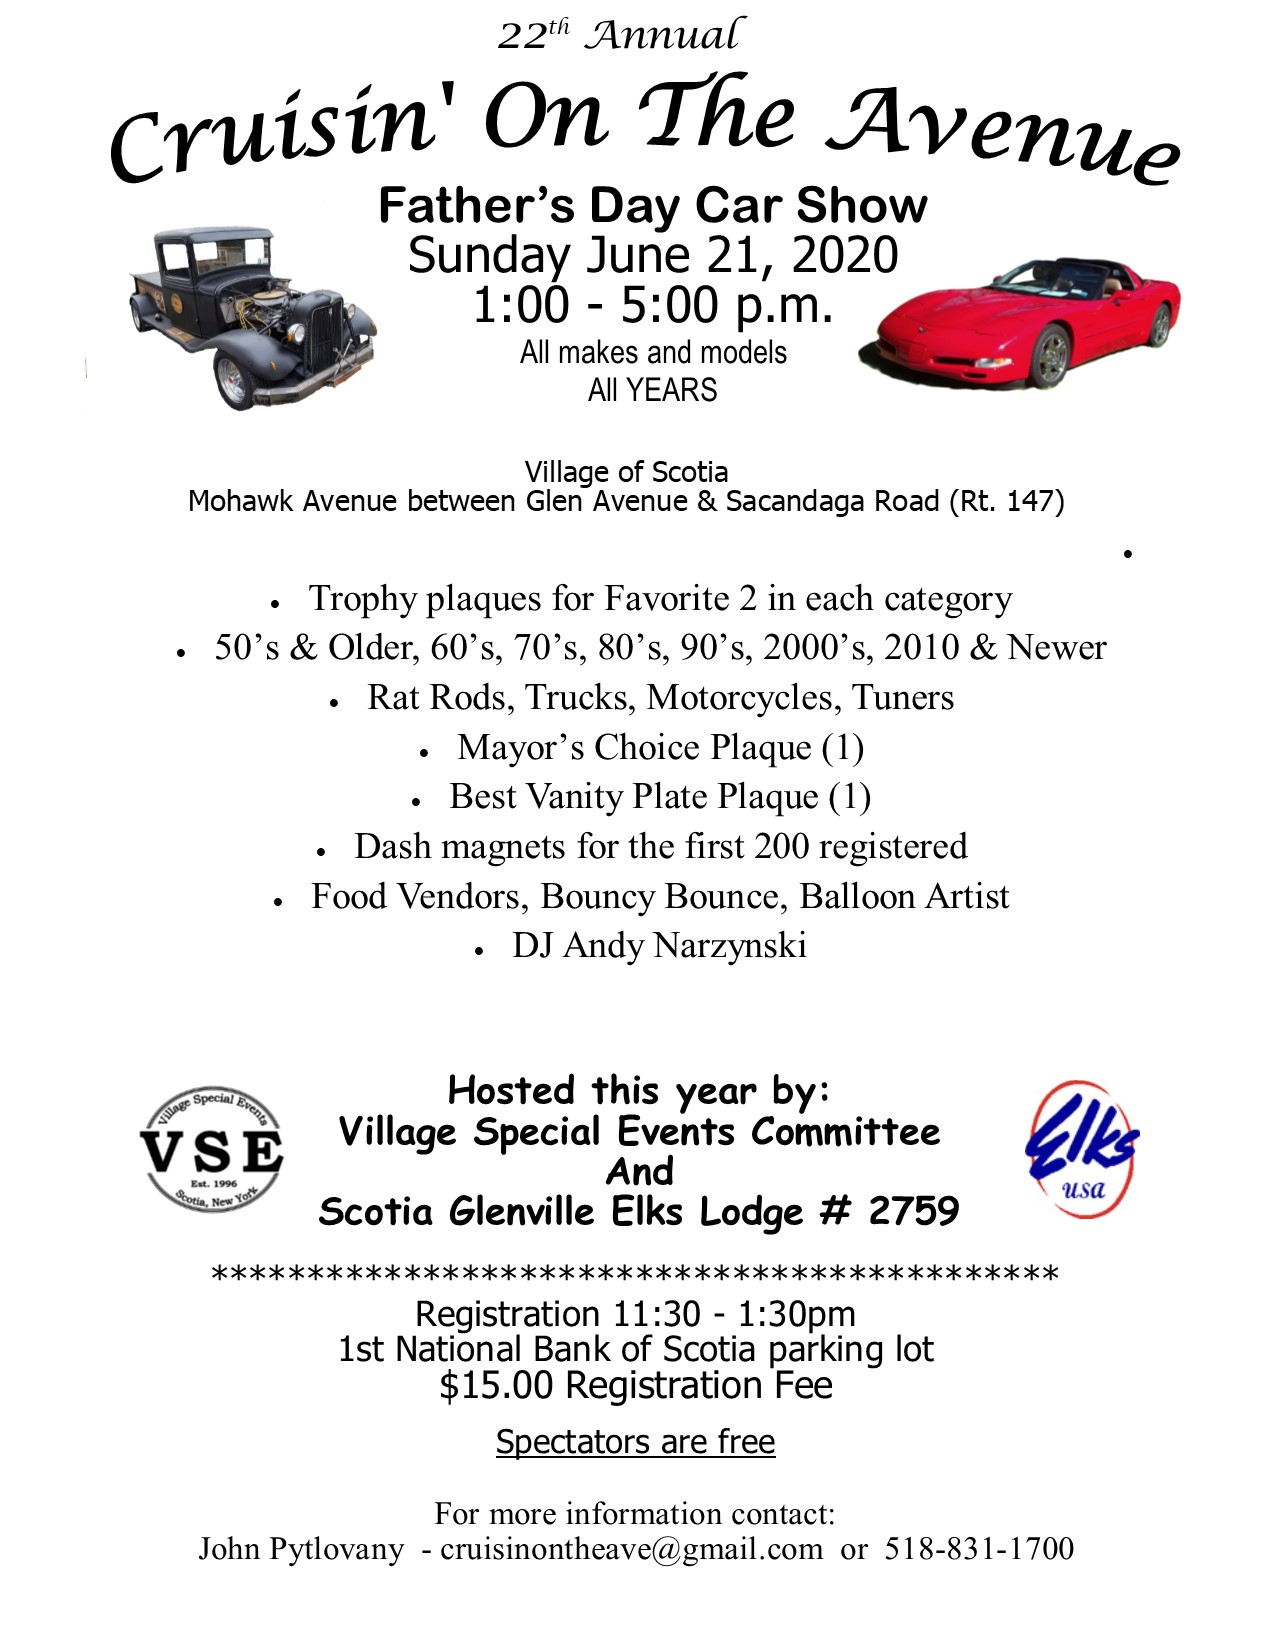 Fathers Day Car Show 2020.The Village Of Scotia Presents Cruisinontheave Com